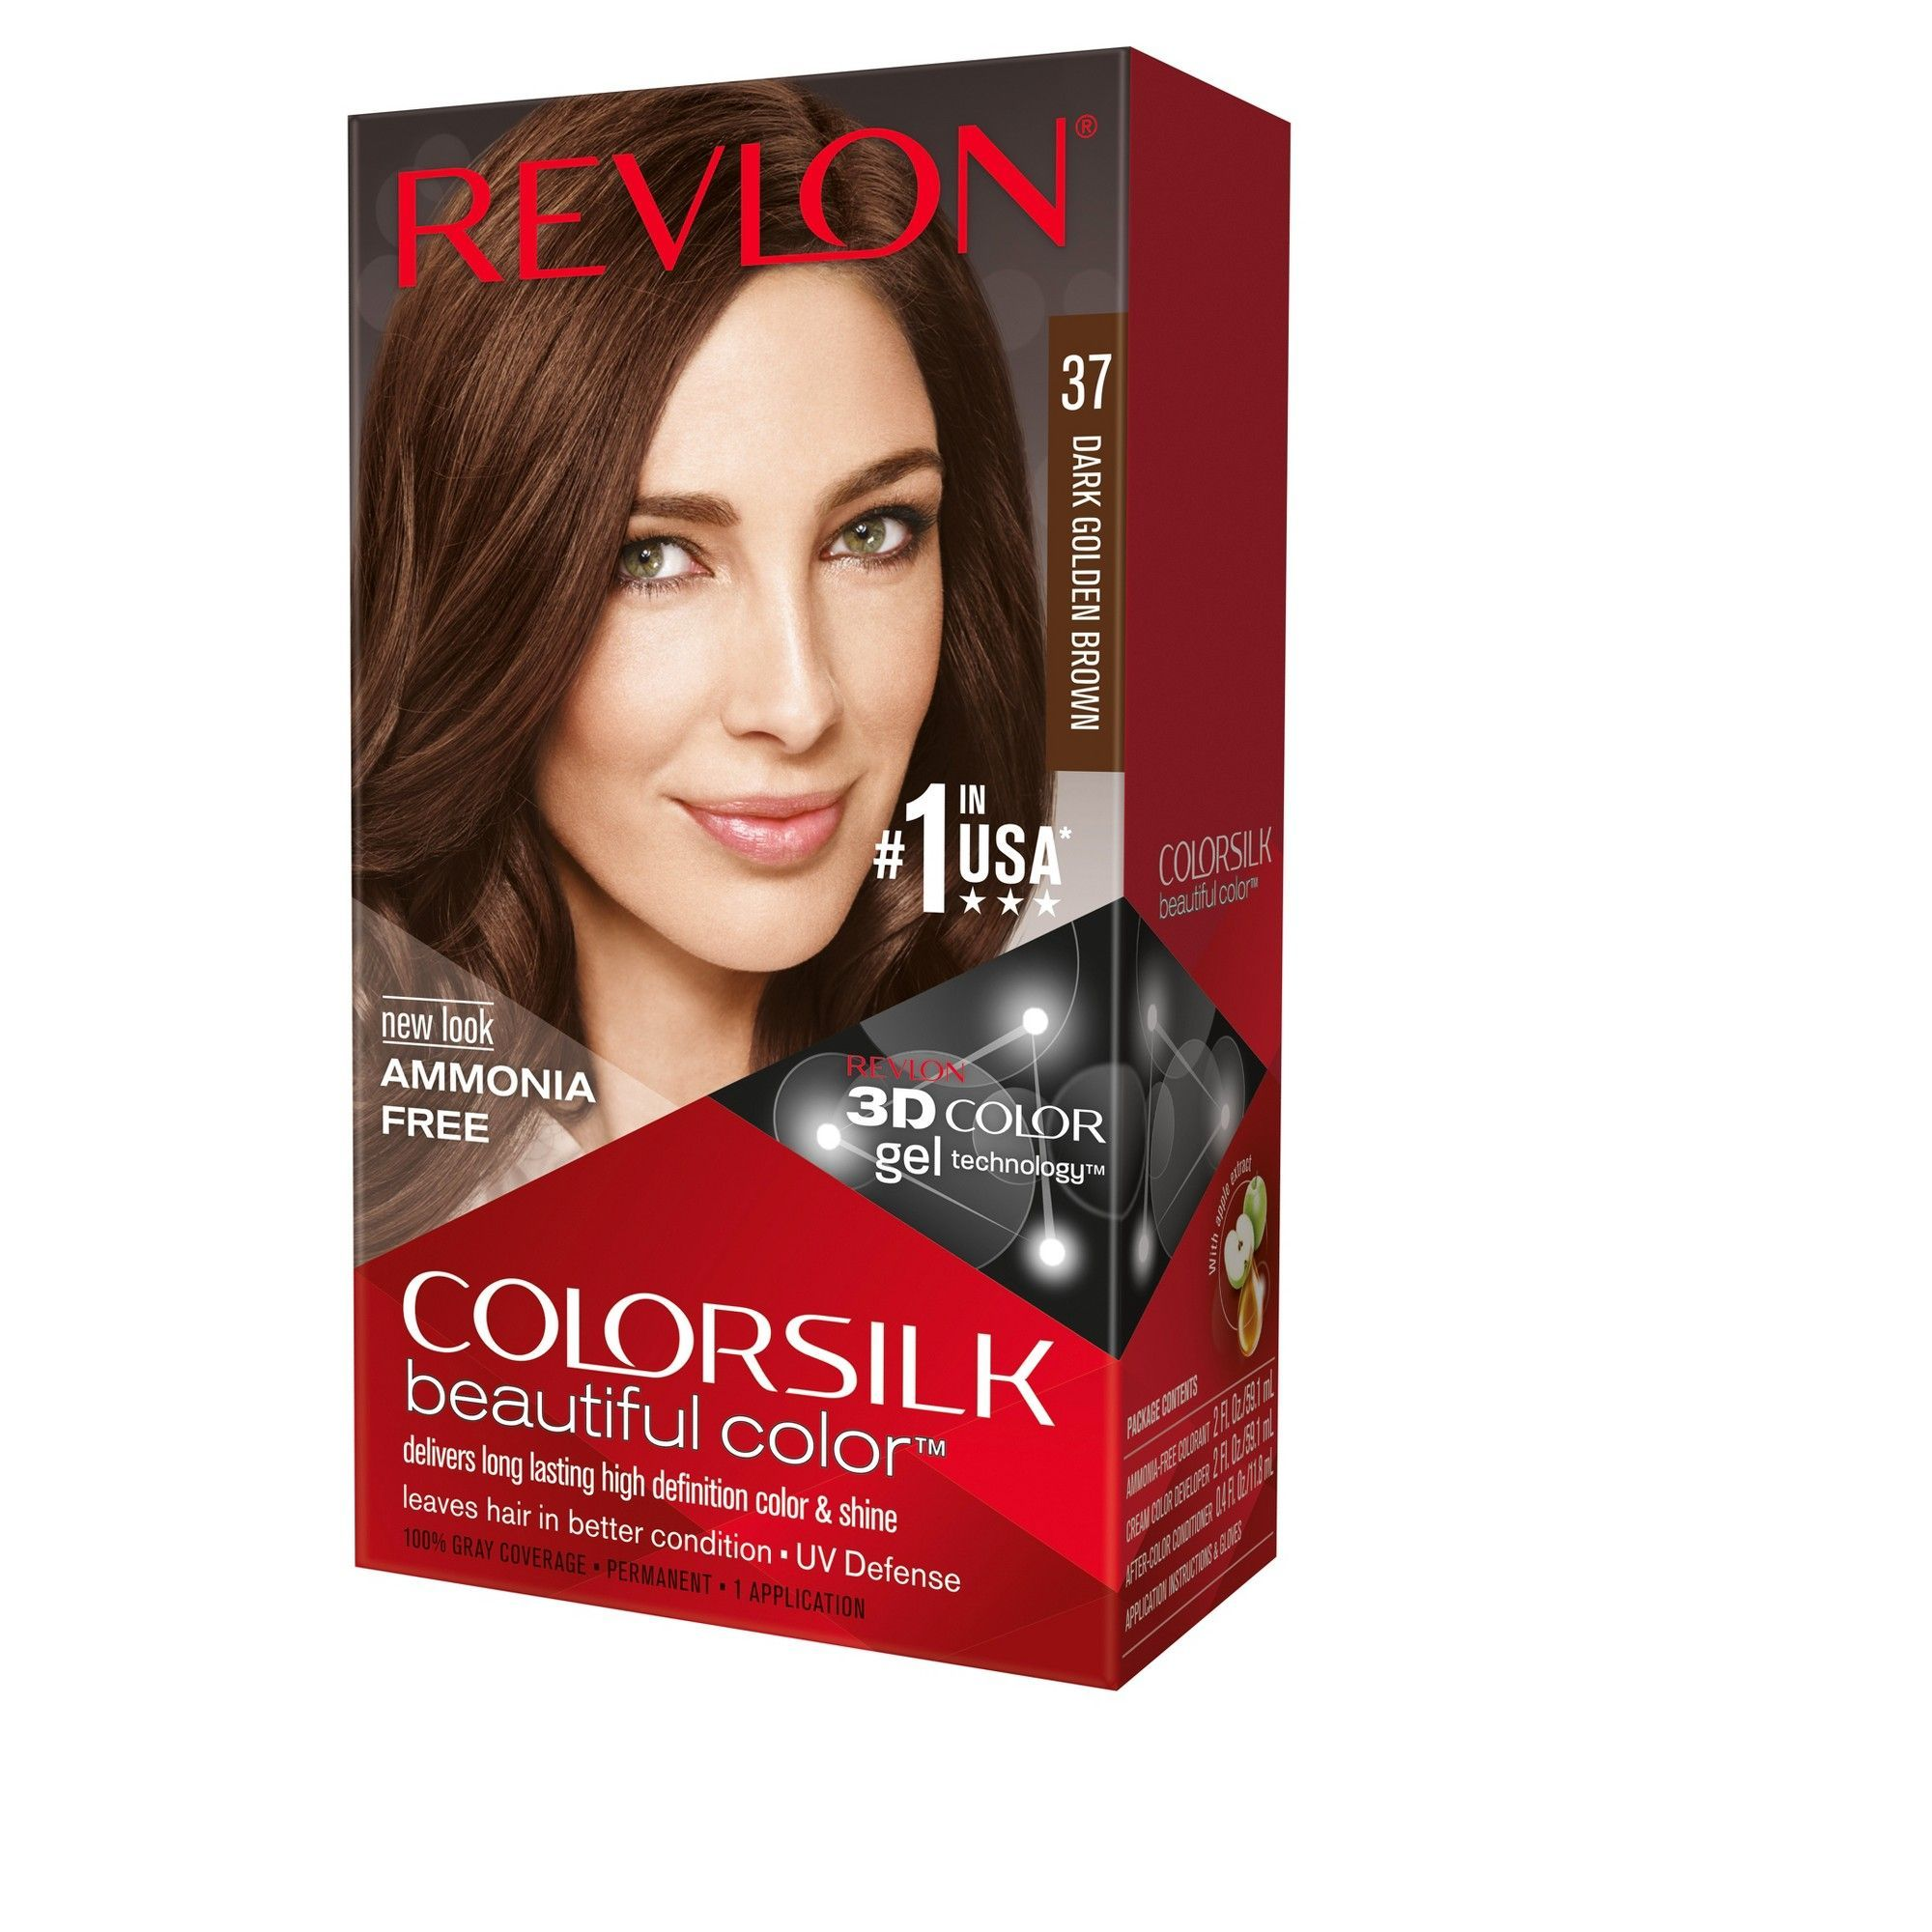 Revlon Colorsilk Beautiful Permanent Hair Color 37 Dark Golden